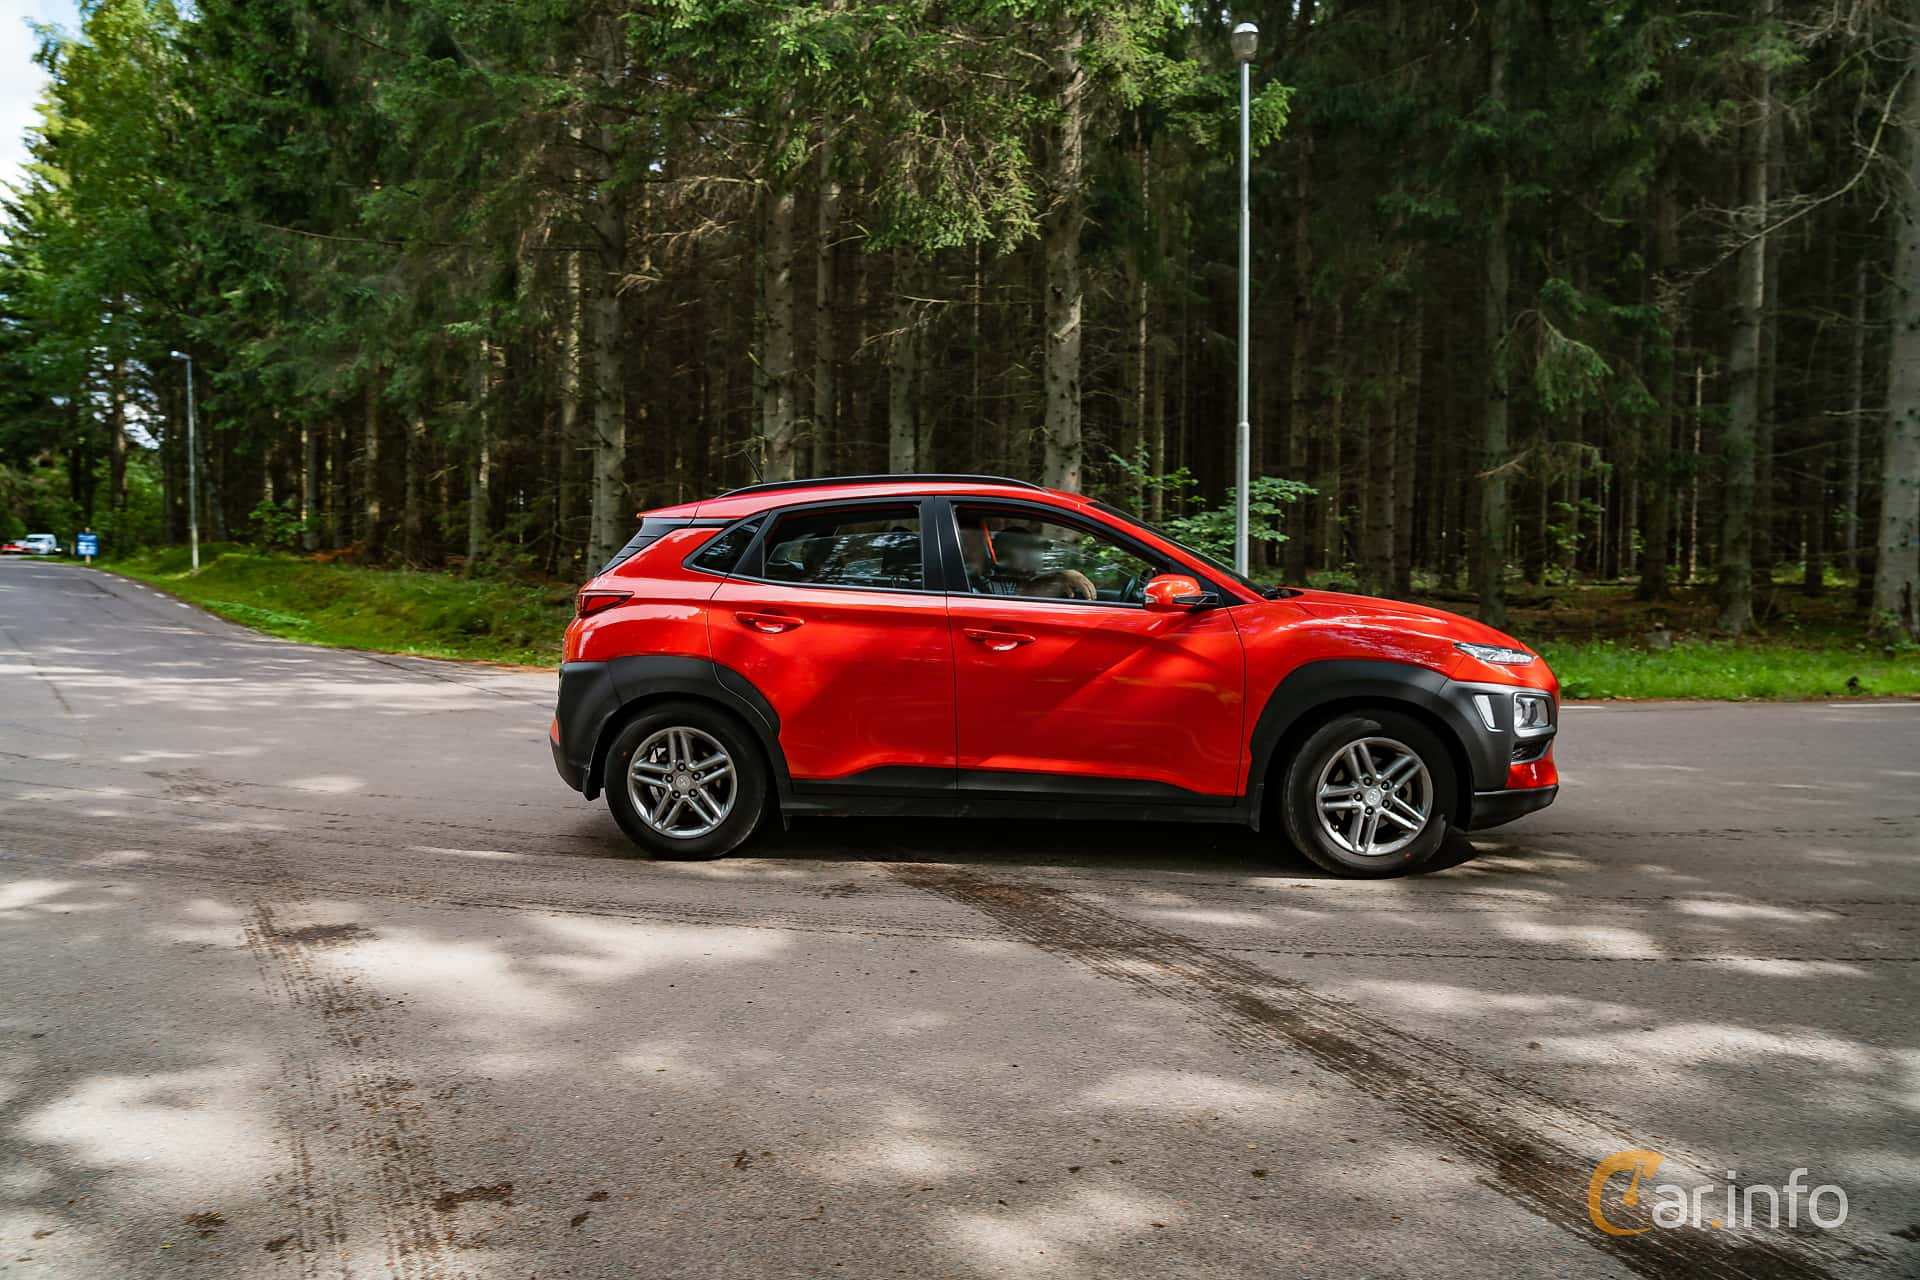 Hyundai Kona 1.0 T-GDI blue Manual, 120hp, 2018 at Svenskt sportvagnsmeeting 2019